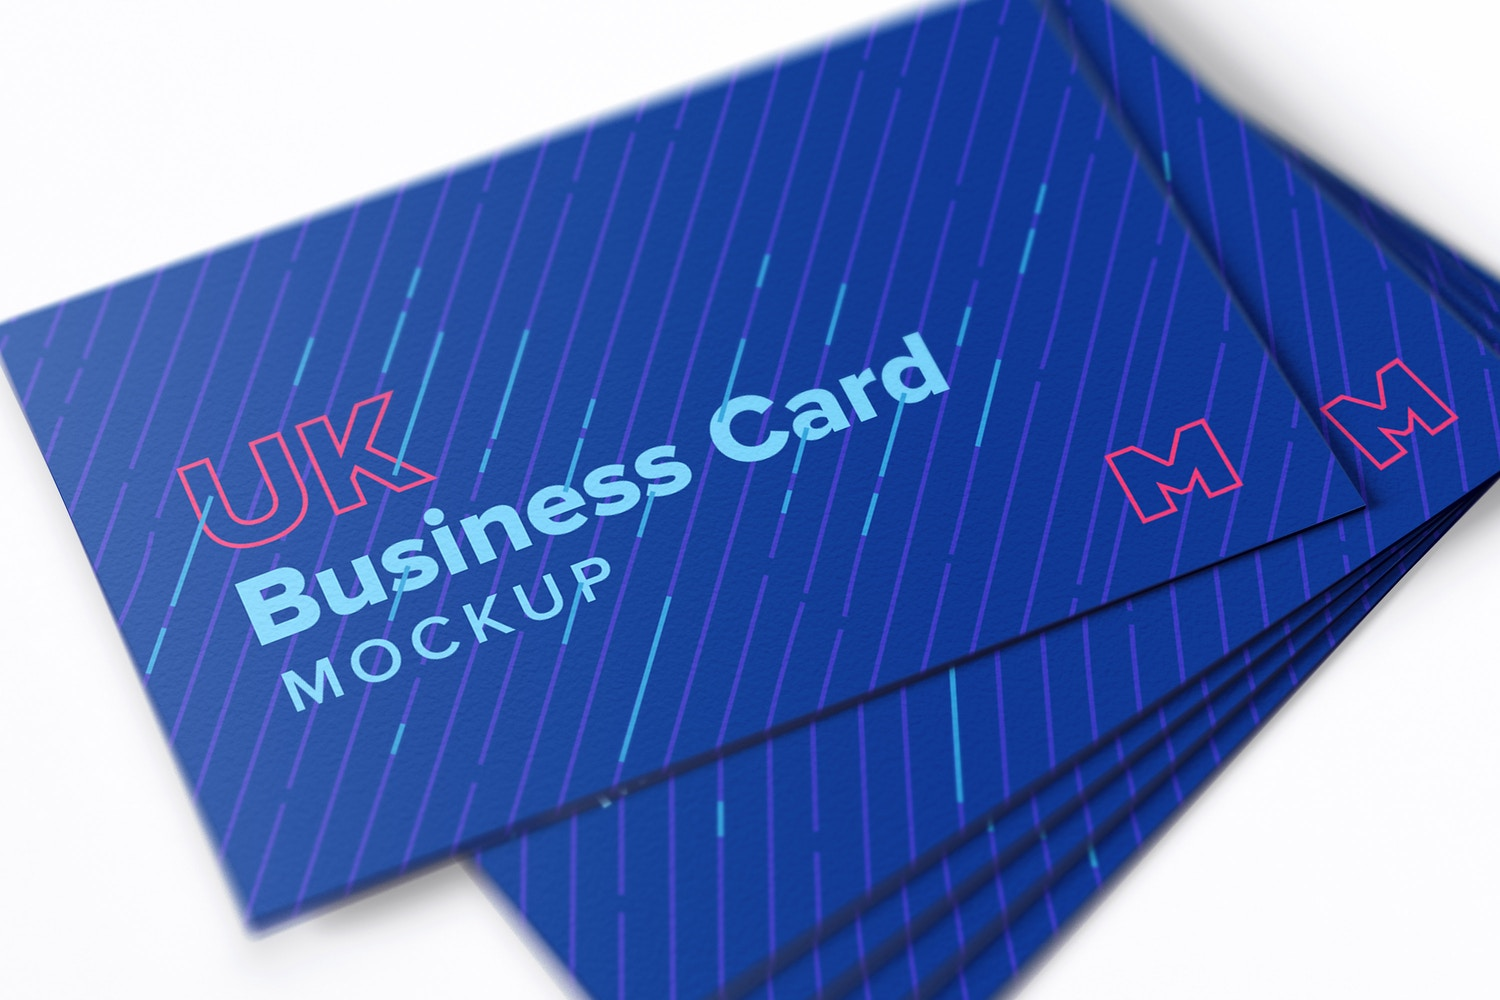 Free uk business cards mockup original mockups uk business cards mockup 04 reheart Image collections